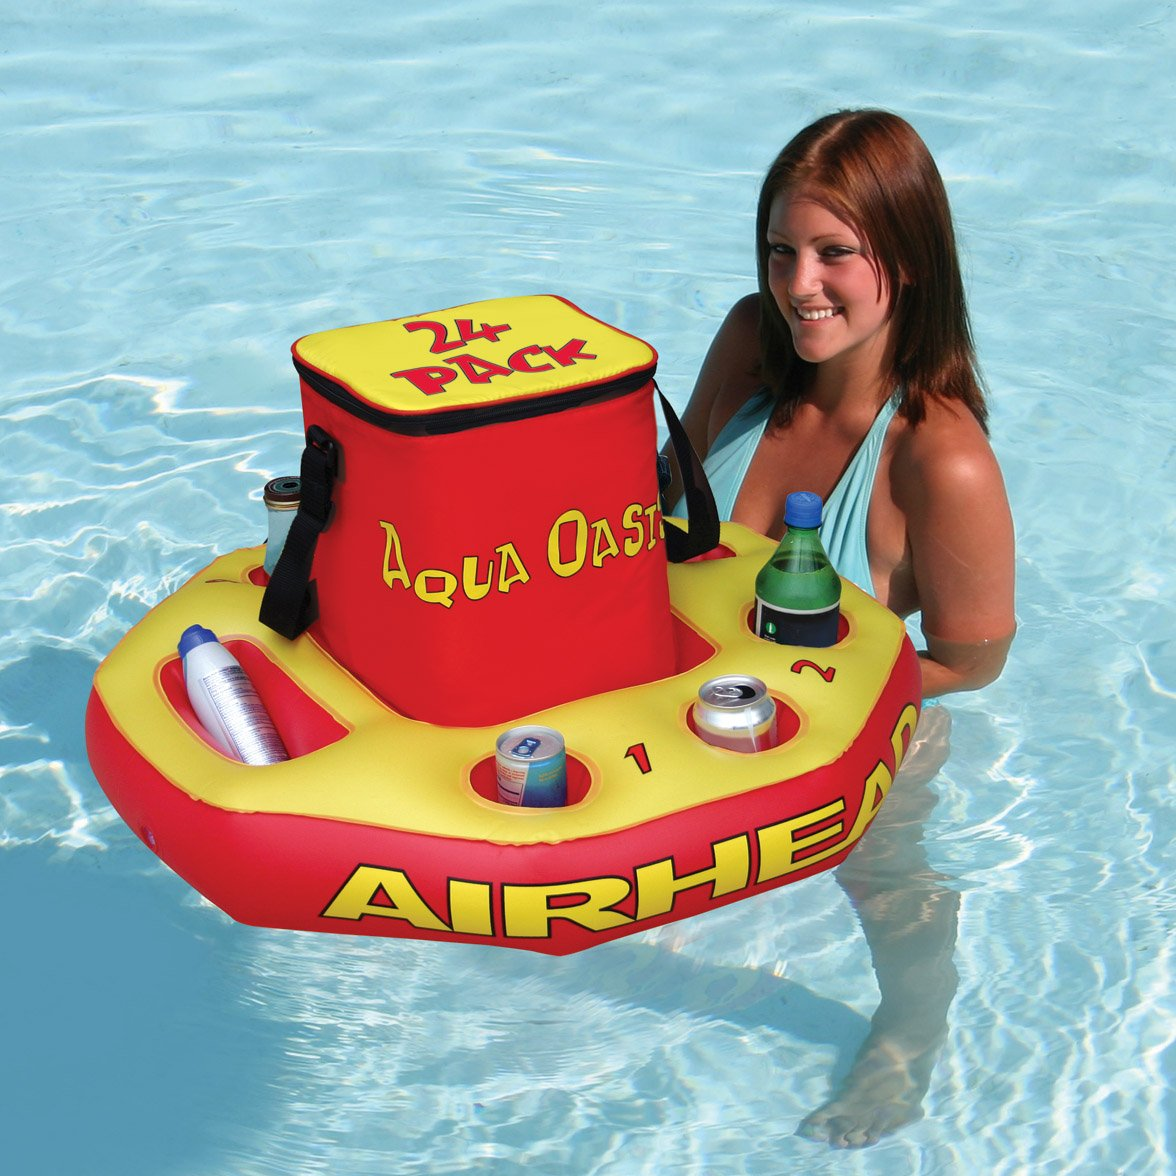 AIRHEAD Aqua Oasis Insulated Cooler with Removable Floating Base